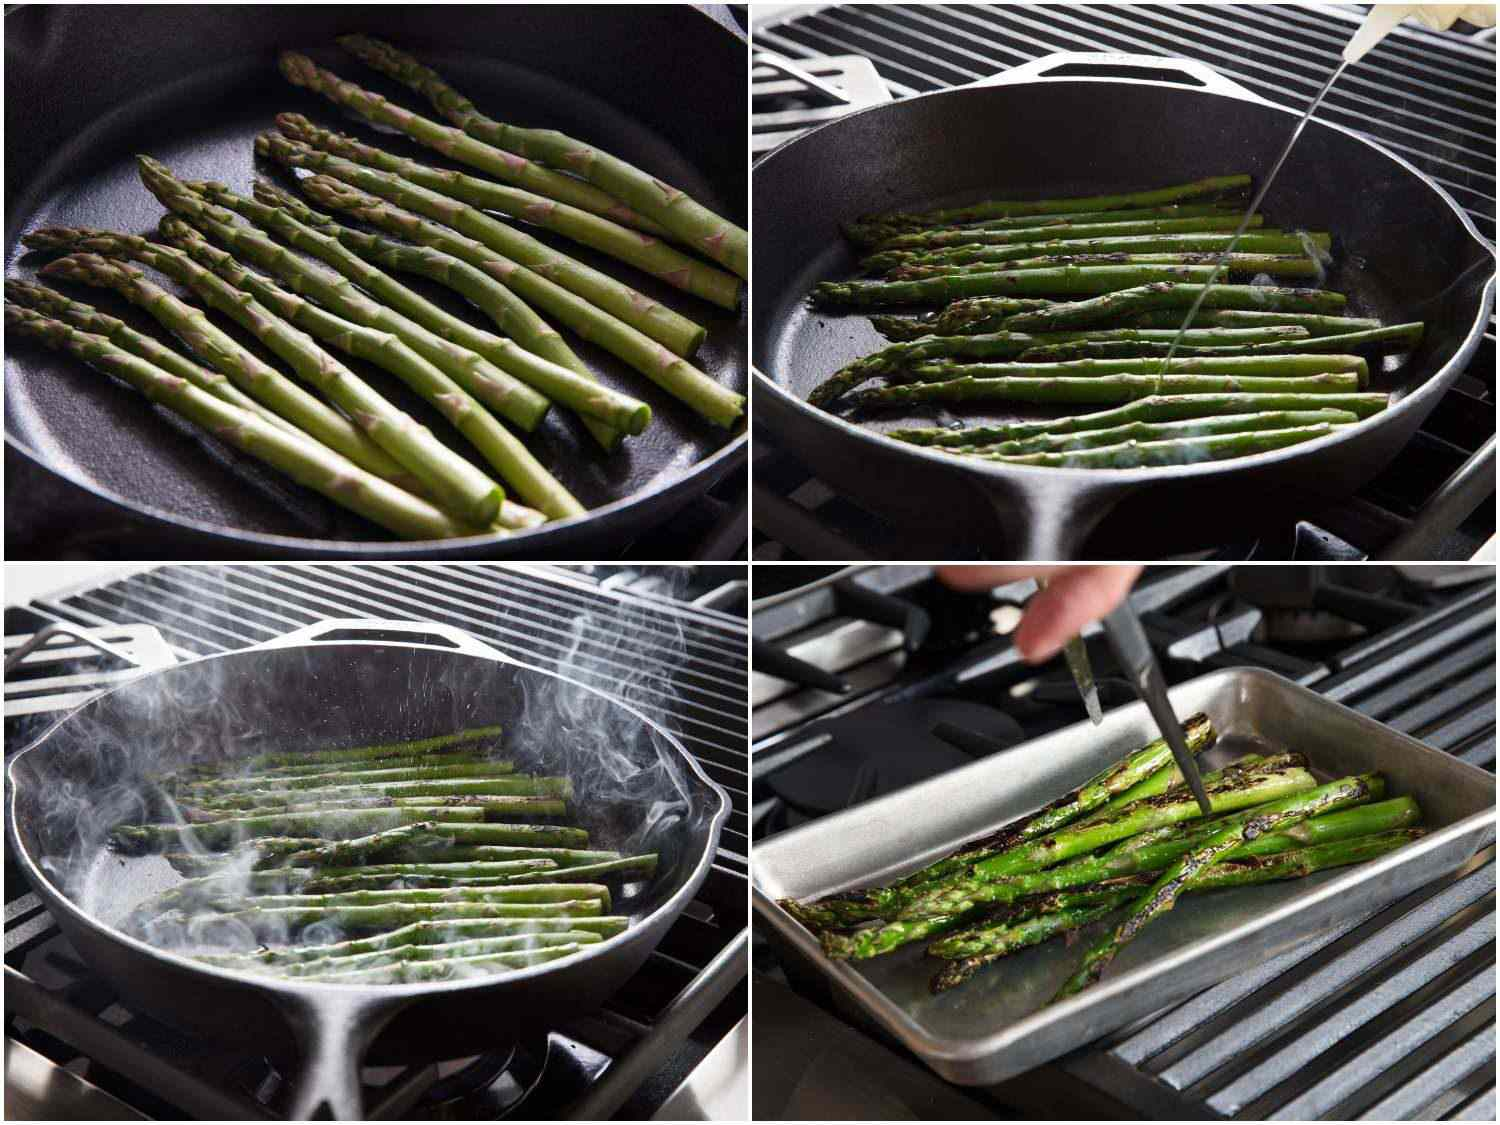 Process shots of charring asparagus in a cast iron pan.